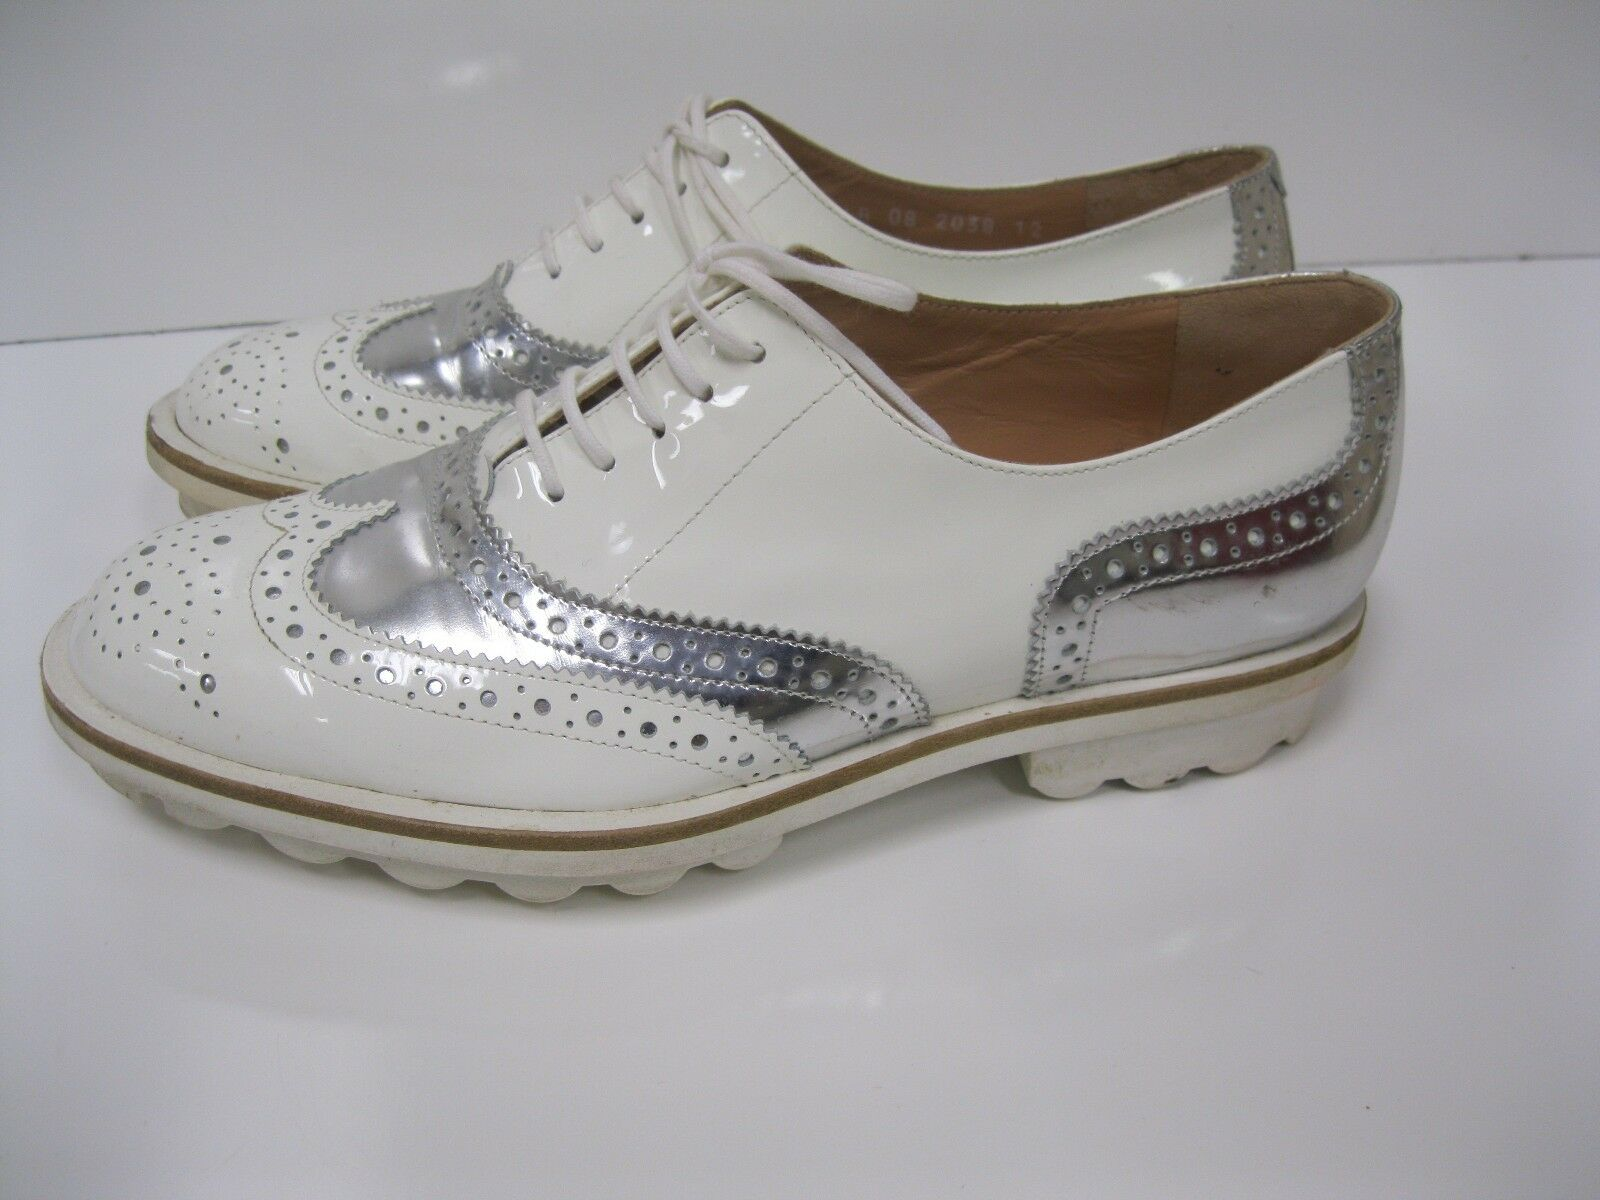 ROBERT CLERGERIE Oxfords Weiß Patent and Silver Leder Oxfords CLERGERIE Schuhes 37.5 EUC 53c48c